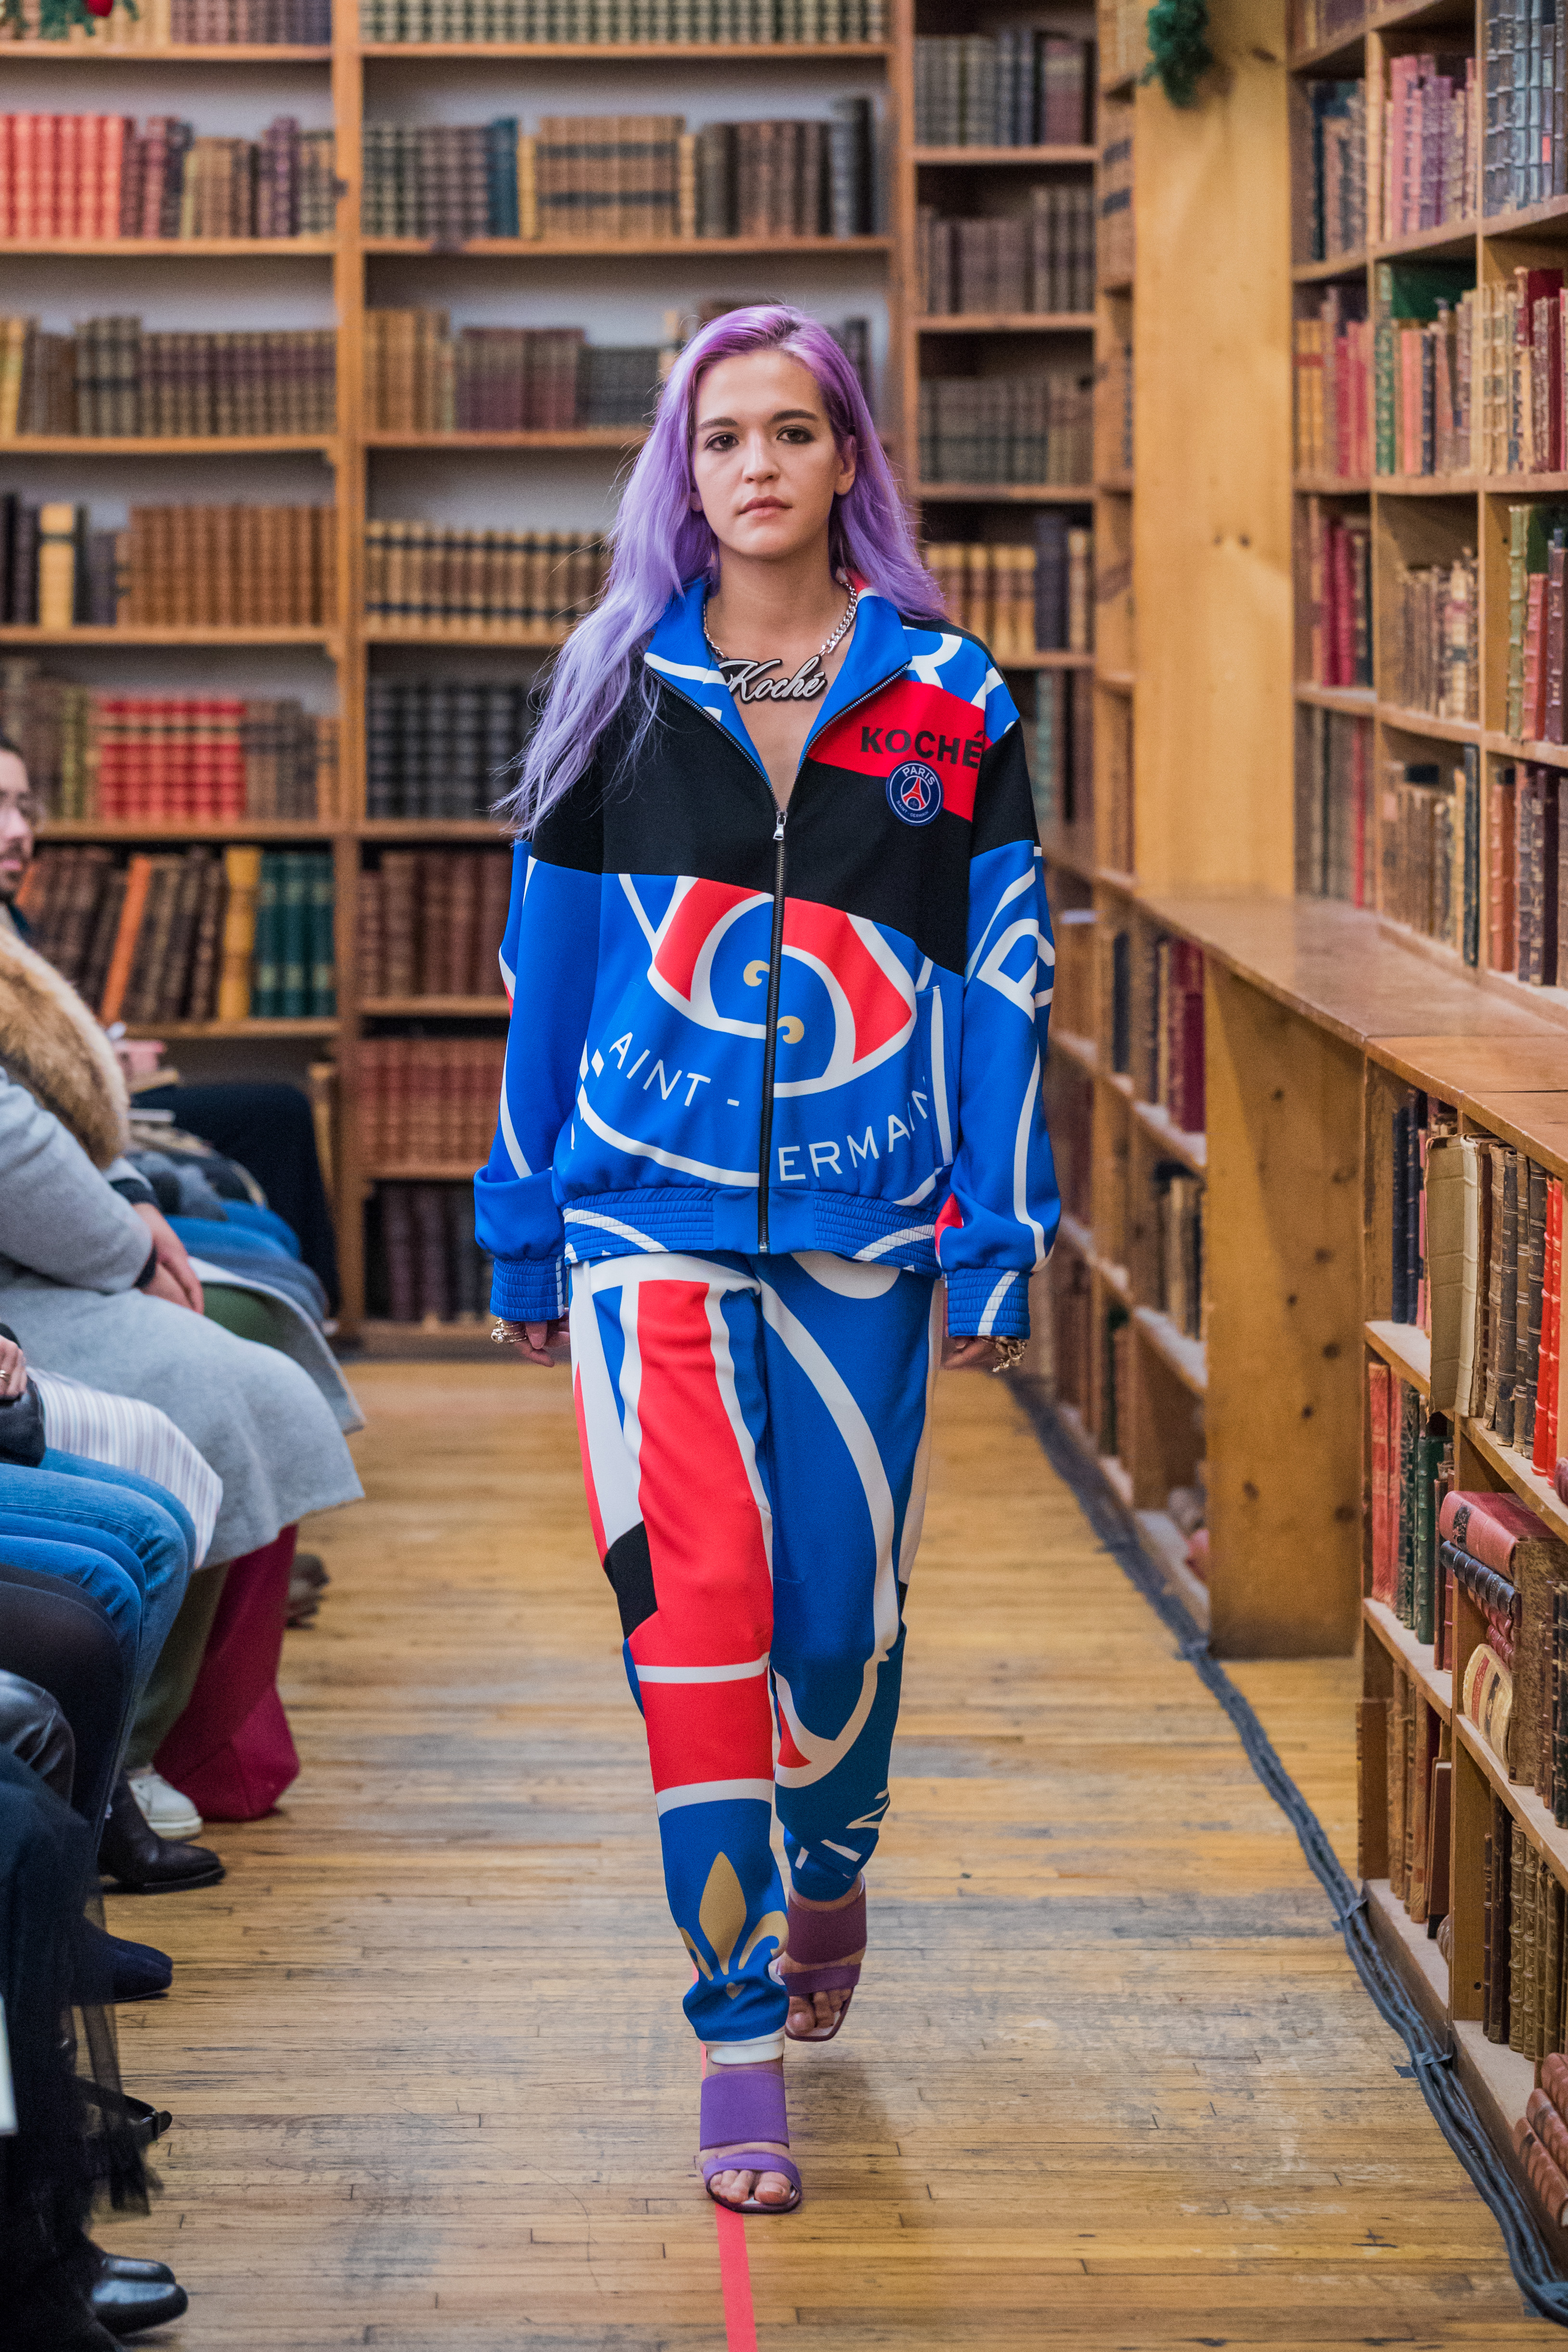 KOCHE BRINGS PARIS SOCCER CULTURE AND WOOL COUTURE TO NEW YORK